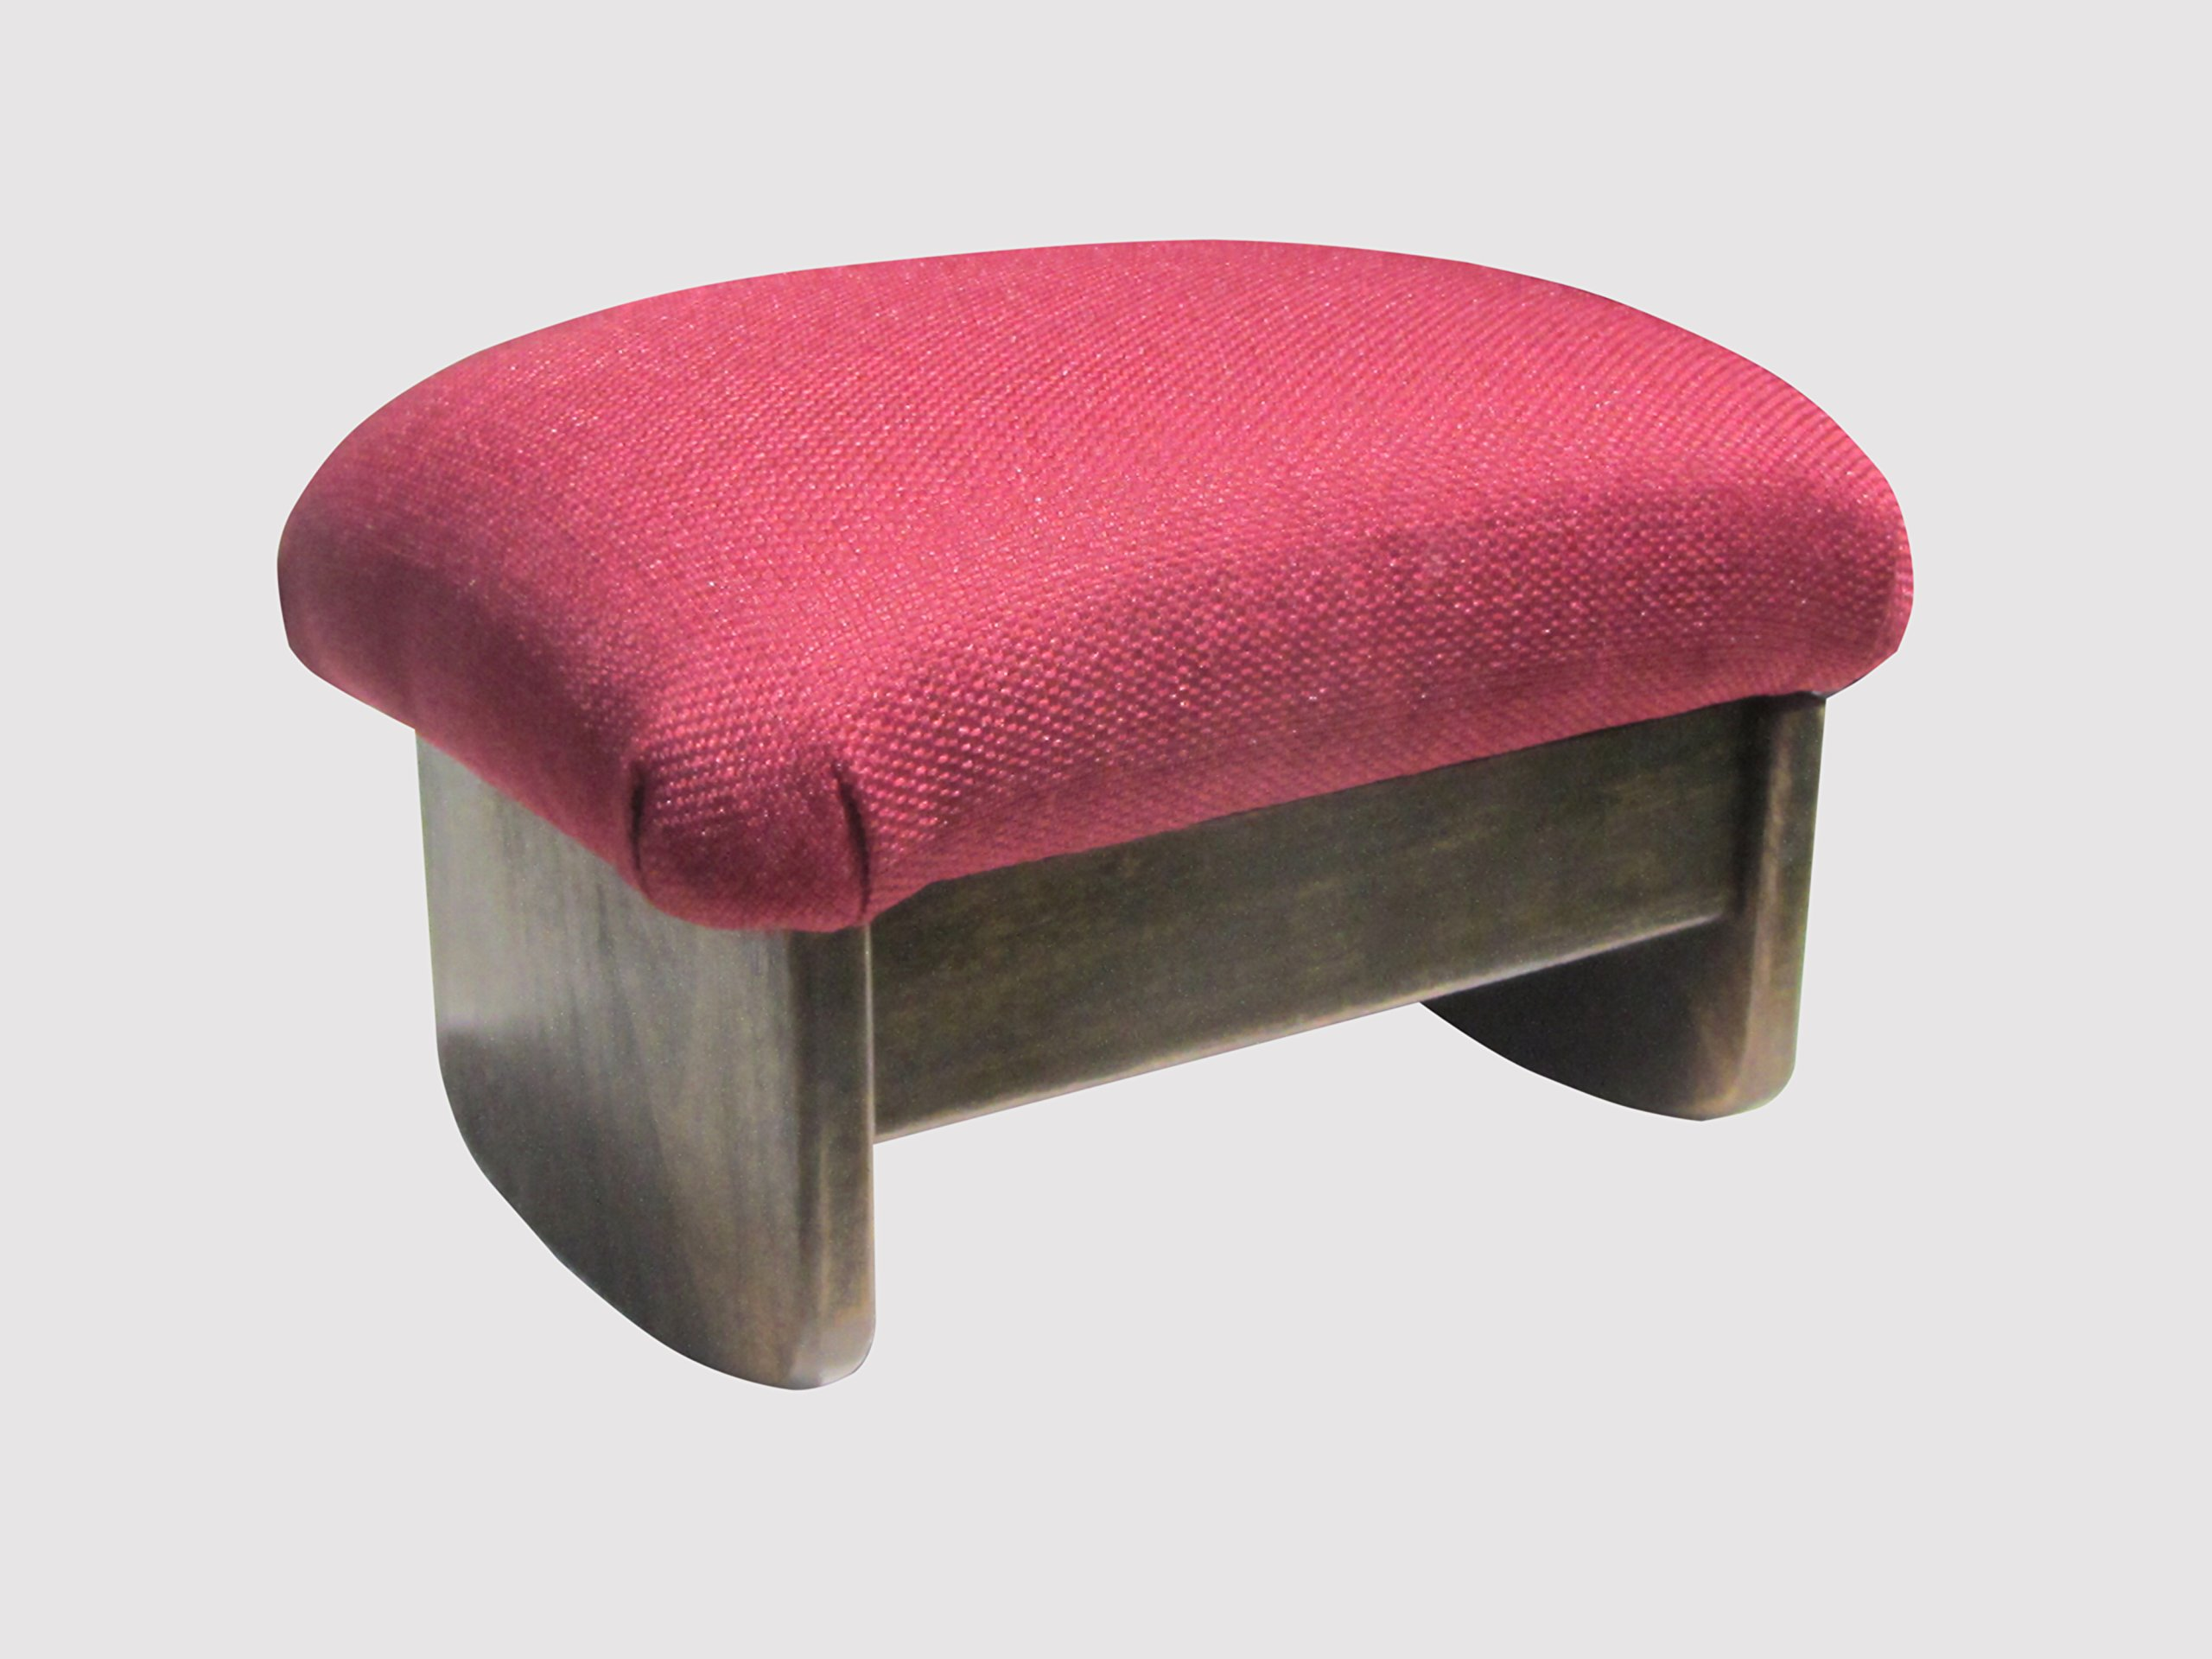 Rocking Padded Foot Stool: Burgundy, 9'' Tall, Walnut Stain (Made in the USA) by KR Ideas